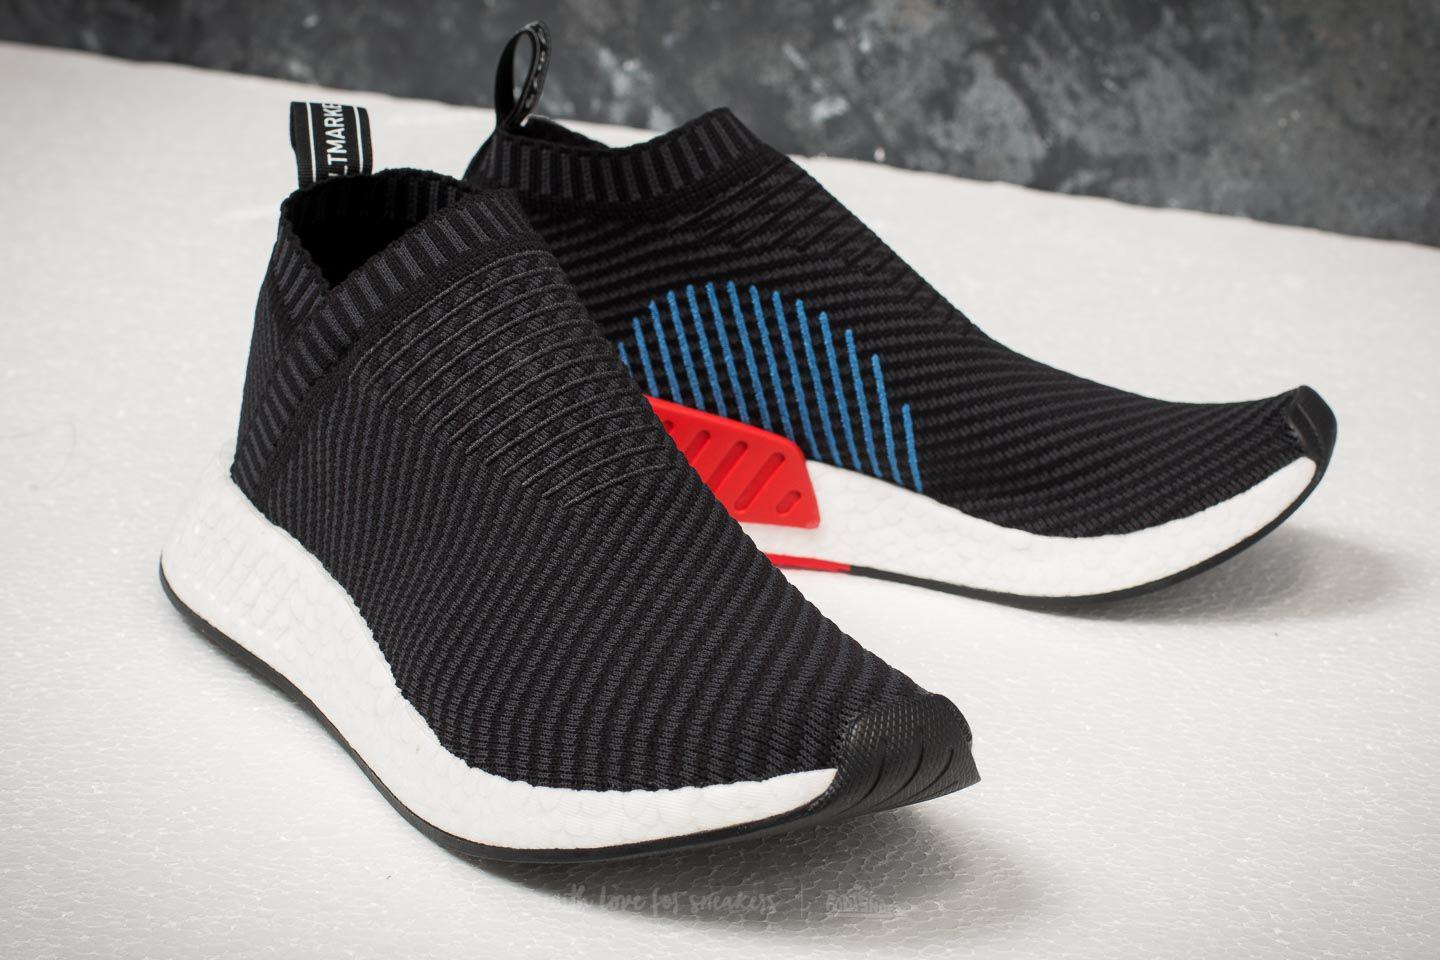 77871e6d4 Lyst - adidas Originals Adidas Nmd cs2 Primeknit Core Black  Carbon ...